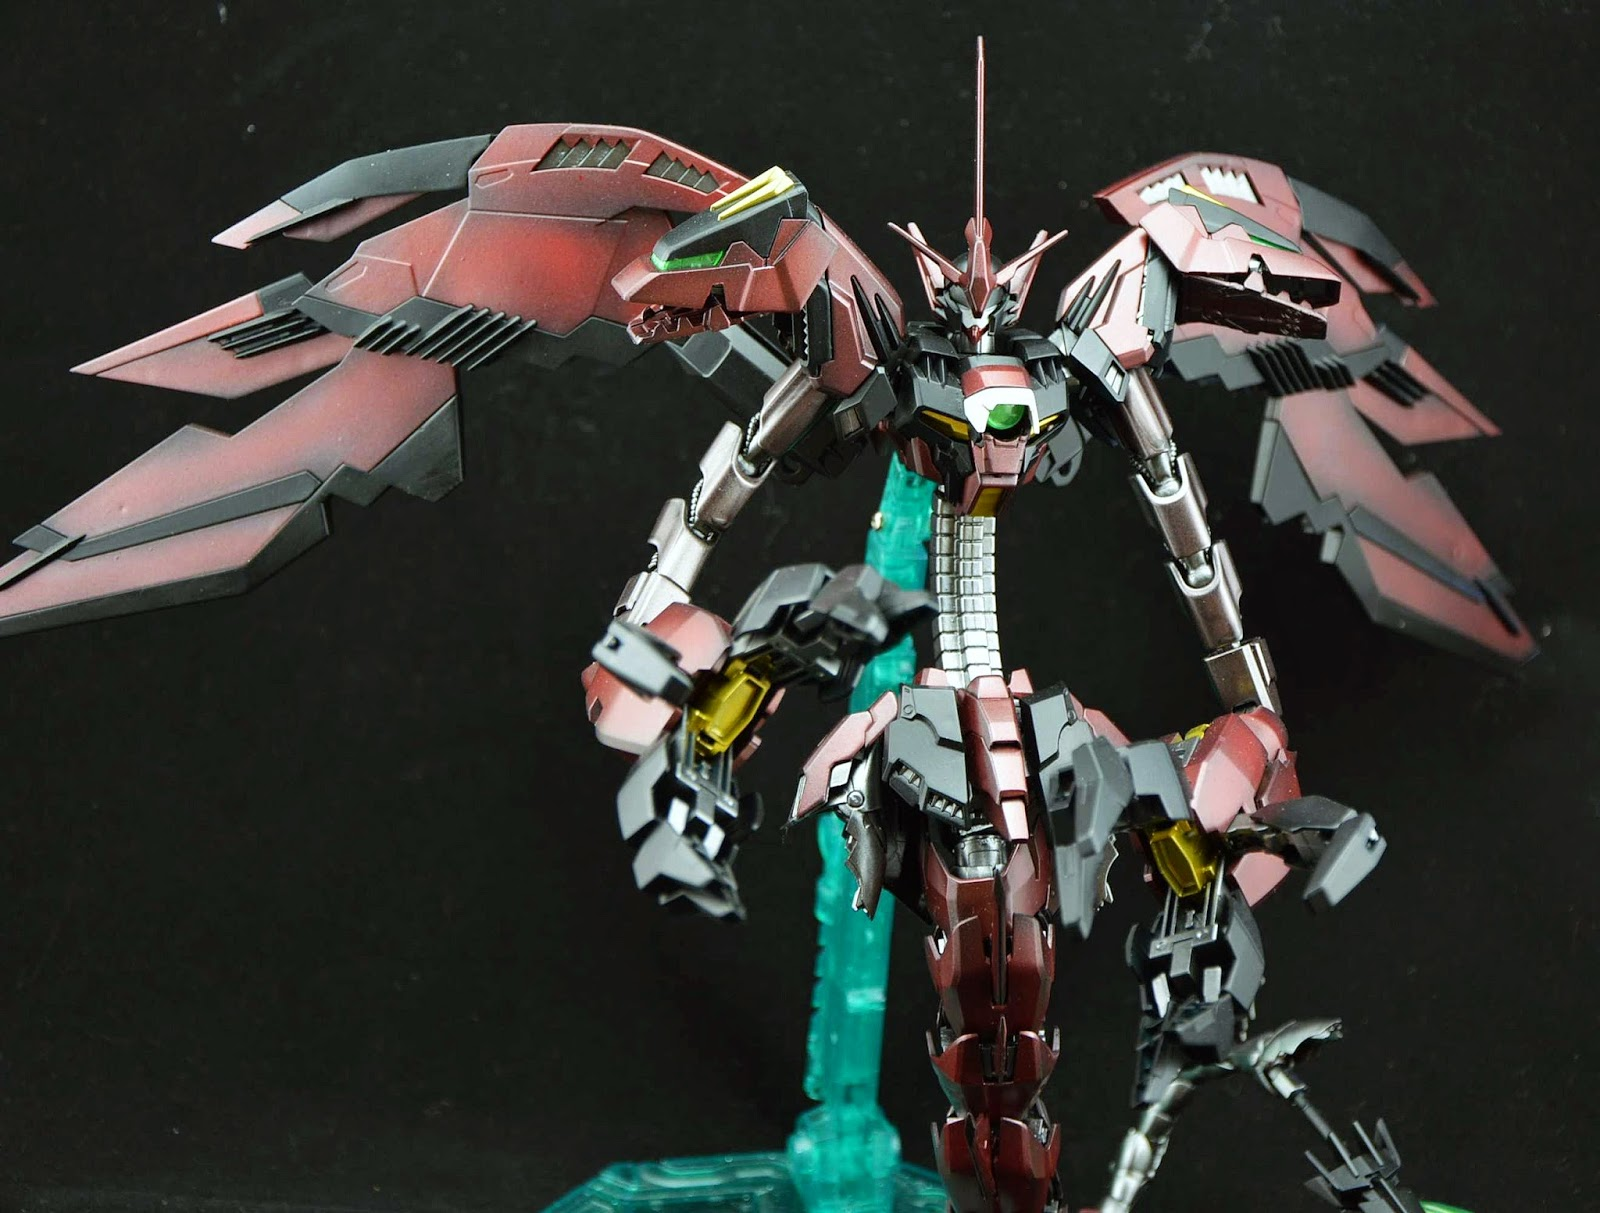 epyon gundam wing - photo #25